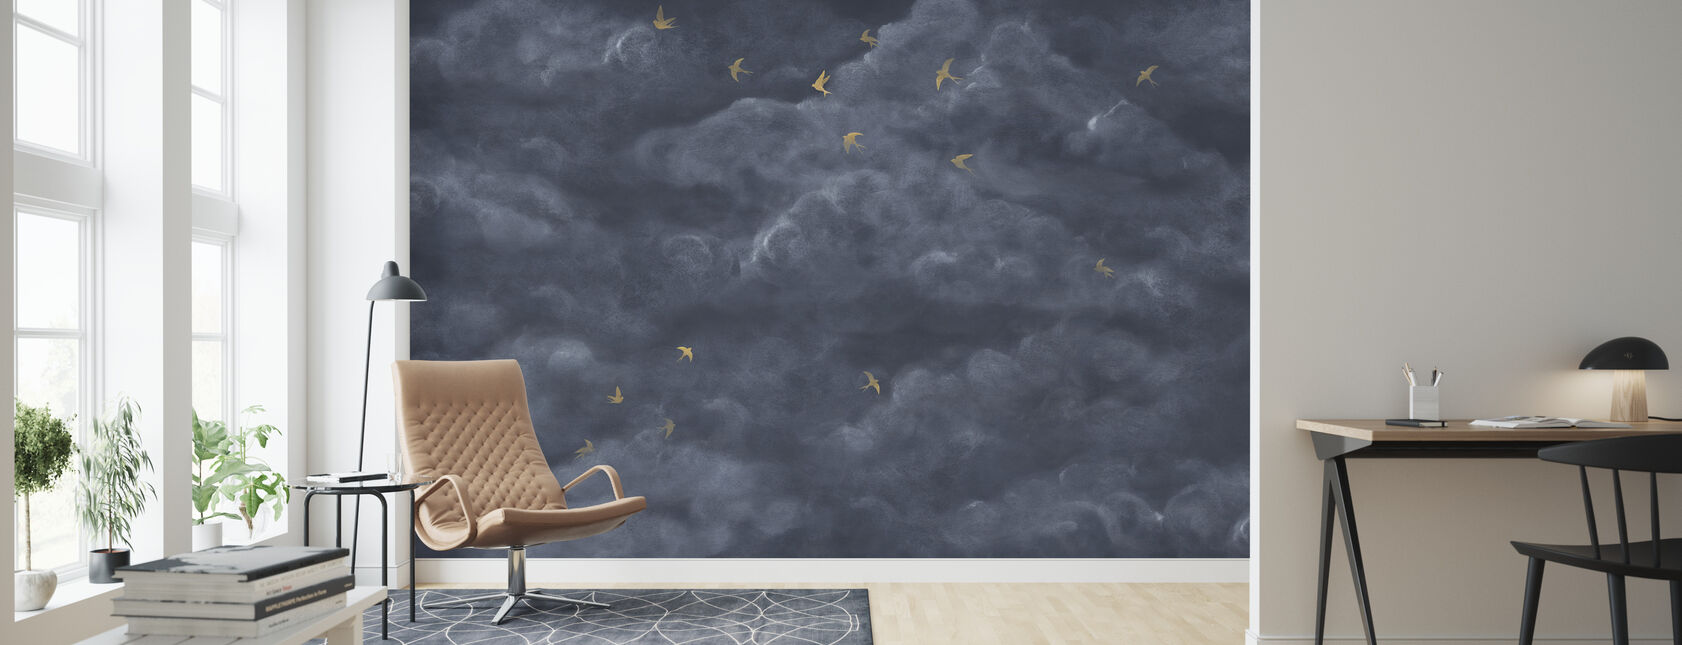 Tender Clouds with Yellow Swallows - Dark Blue - Wallpaper - Living Room